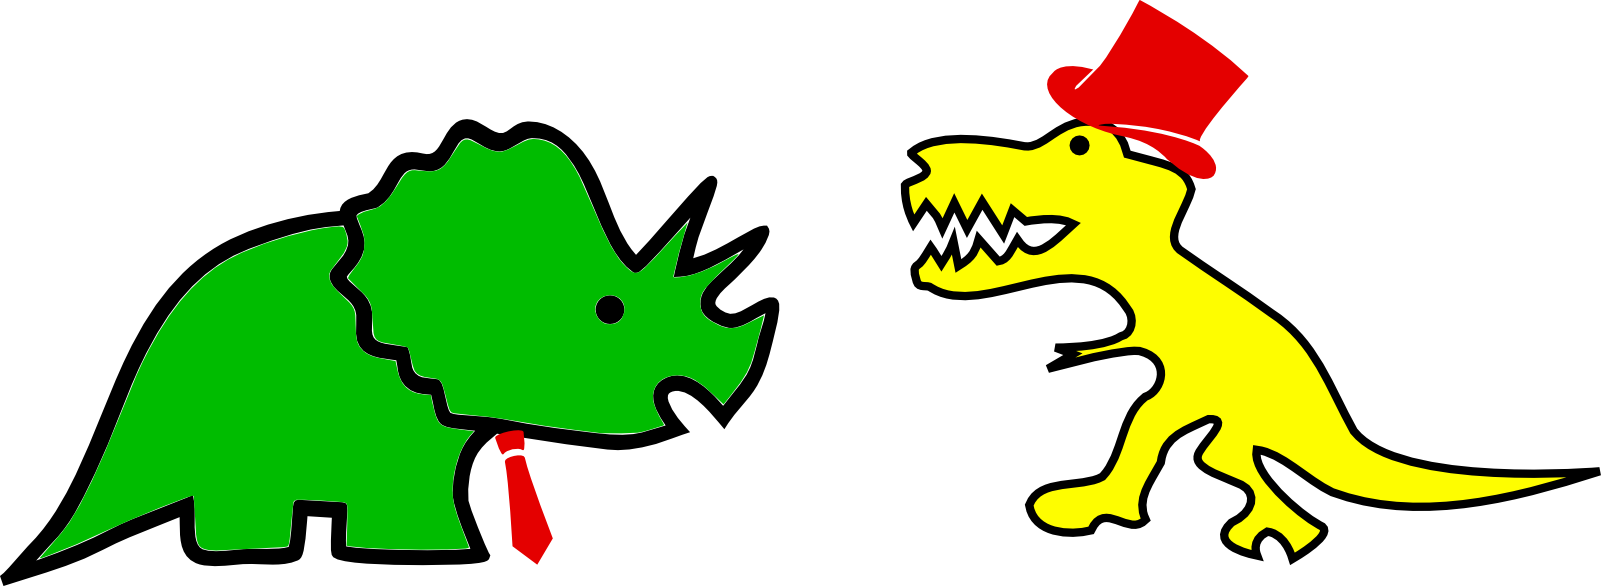 Fancy-dressed but crudely drawn dinosaurs